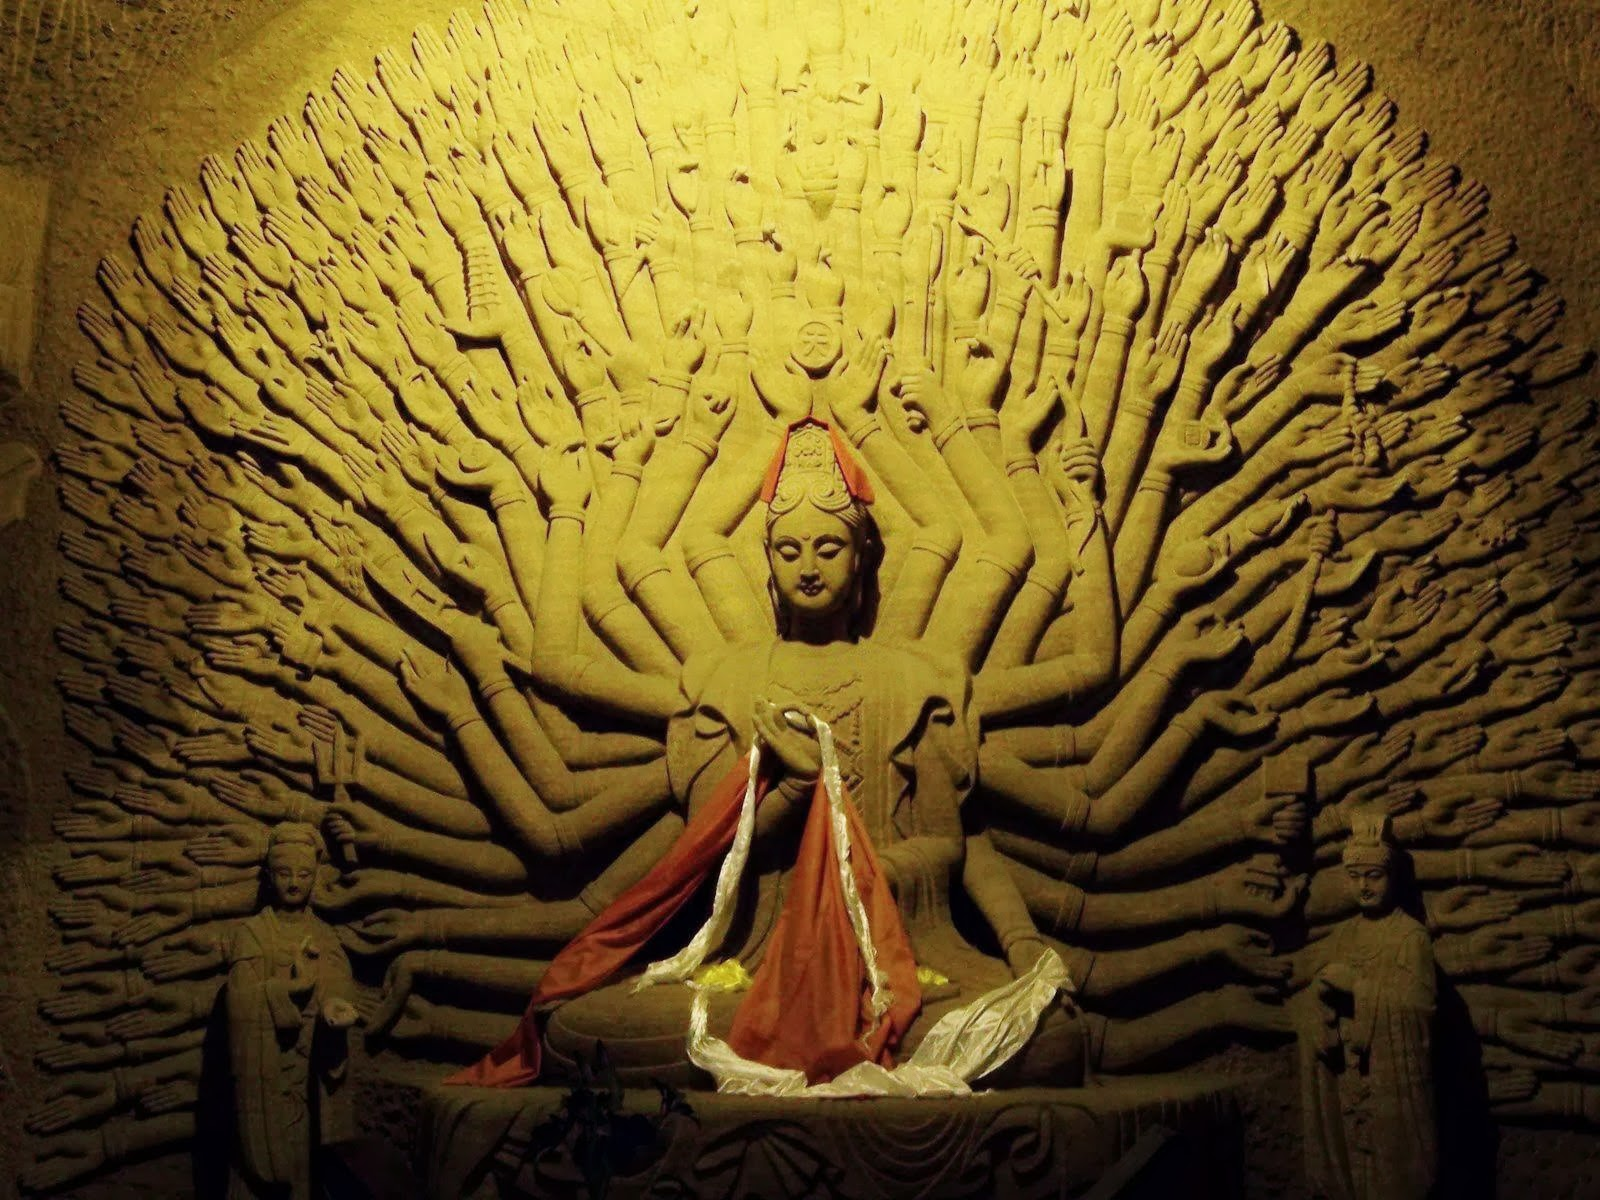 YOGA LIFE: Are you on your way to Bodhisattva?